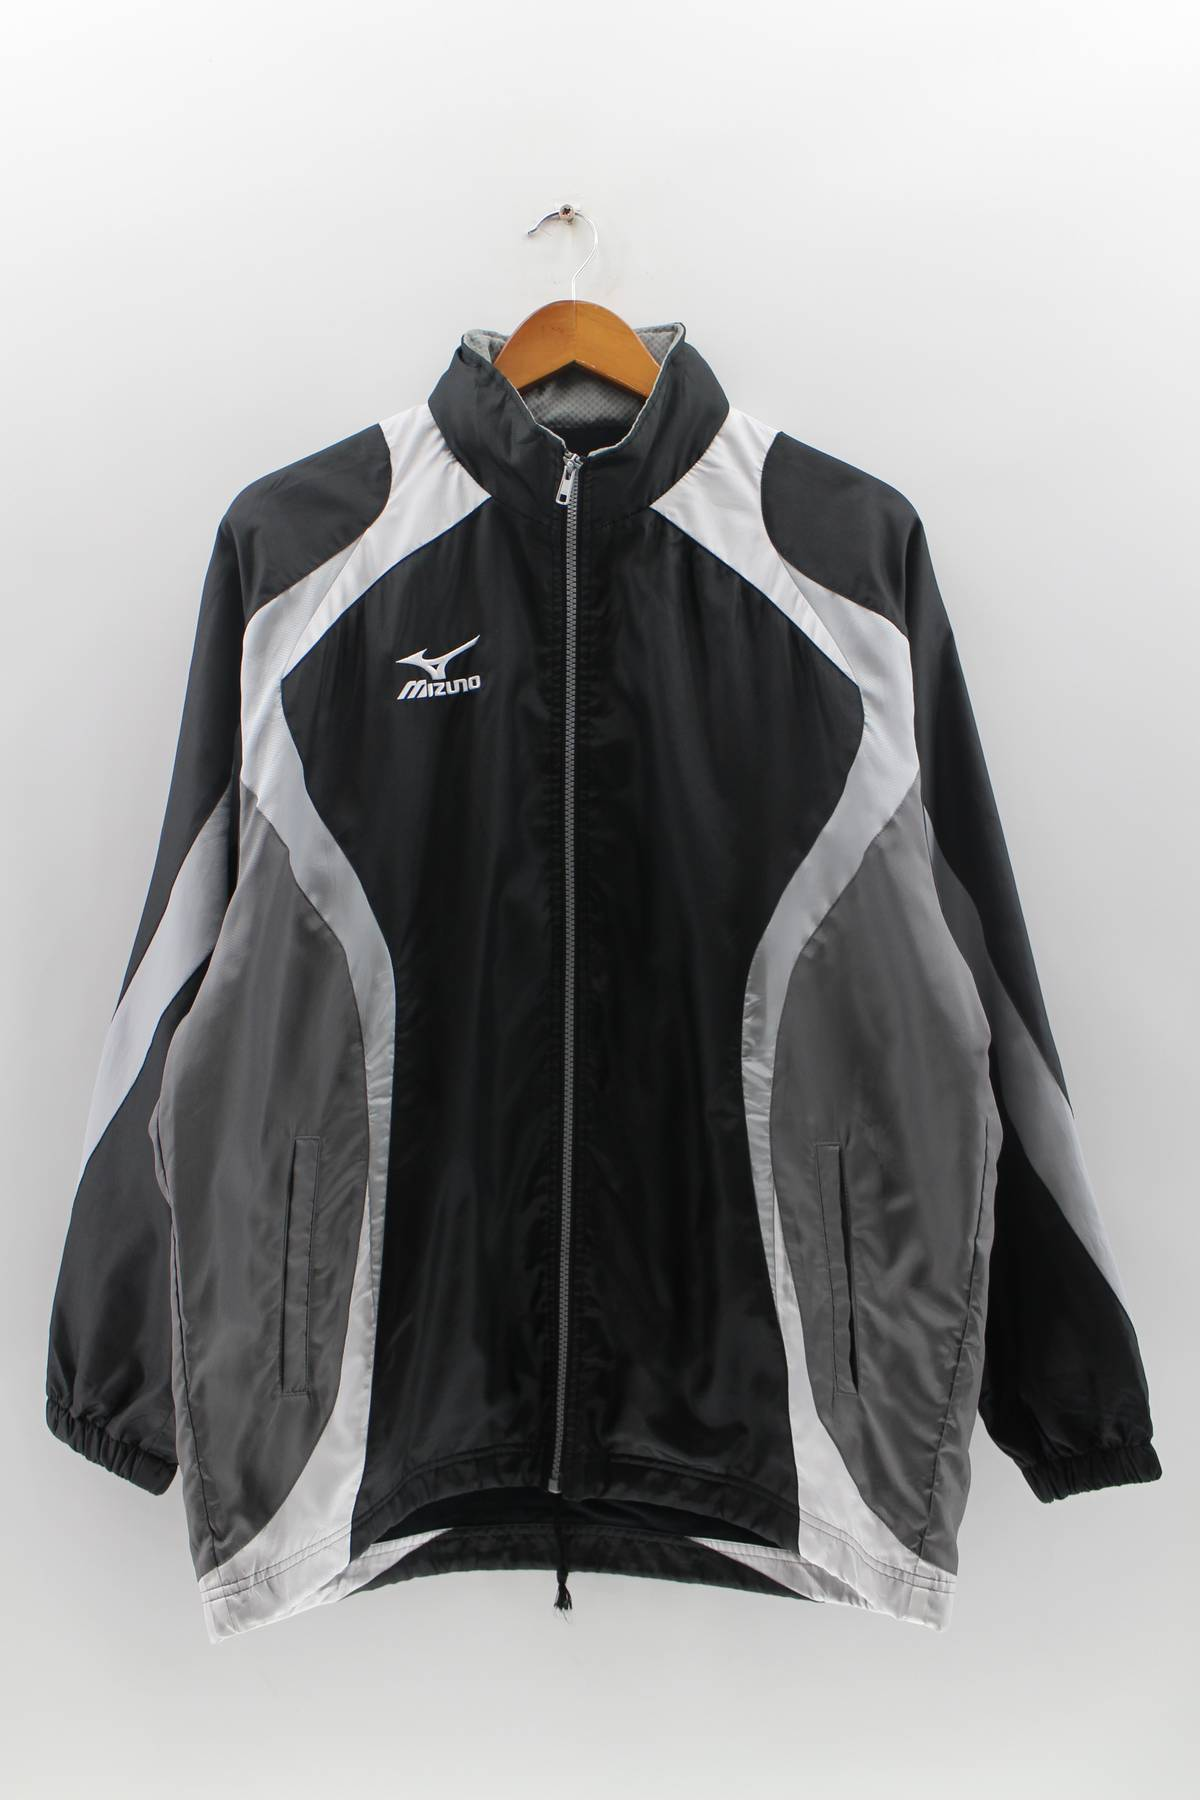 b75f5447e33d0 Mizuno Vintage Mizuno Windbreaker Jacket Unisex Medium Mizuno Track Top  Zipper 90's Jacker Mizuno Color Block Jacket Size M Size M $129